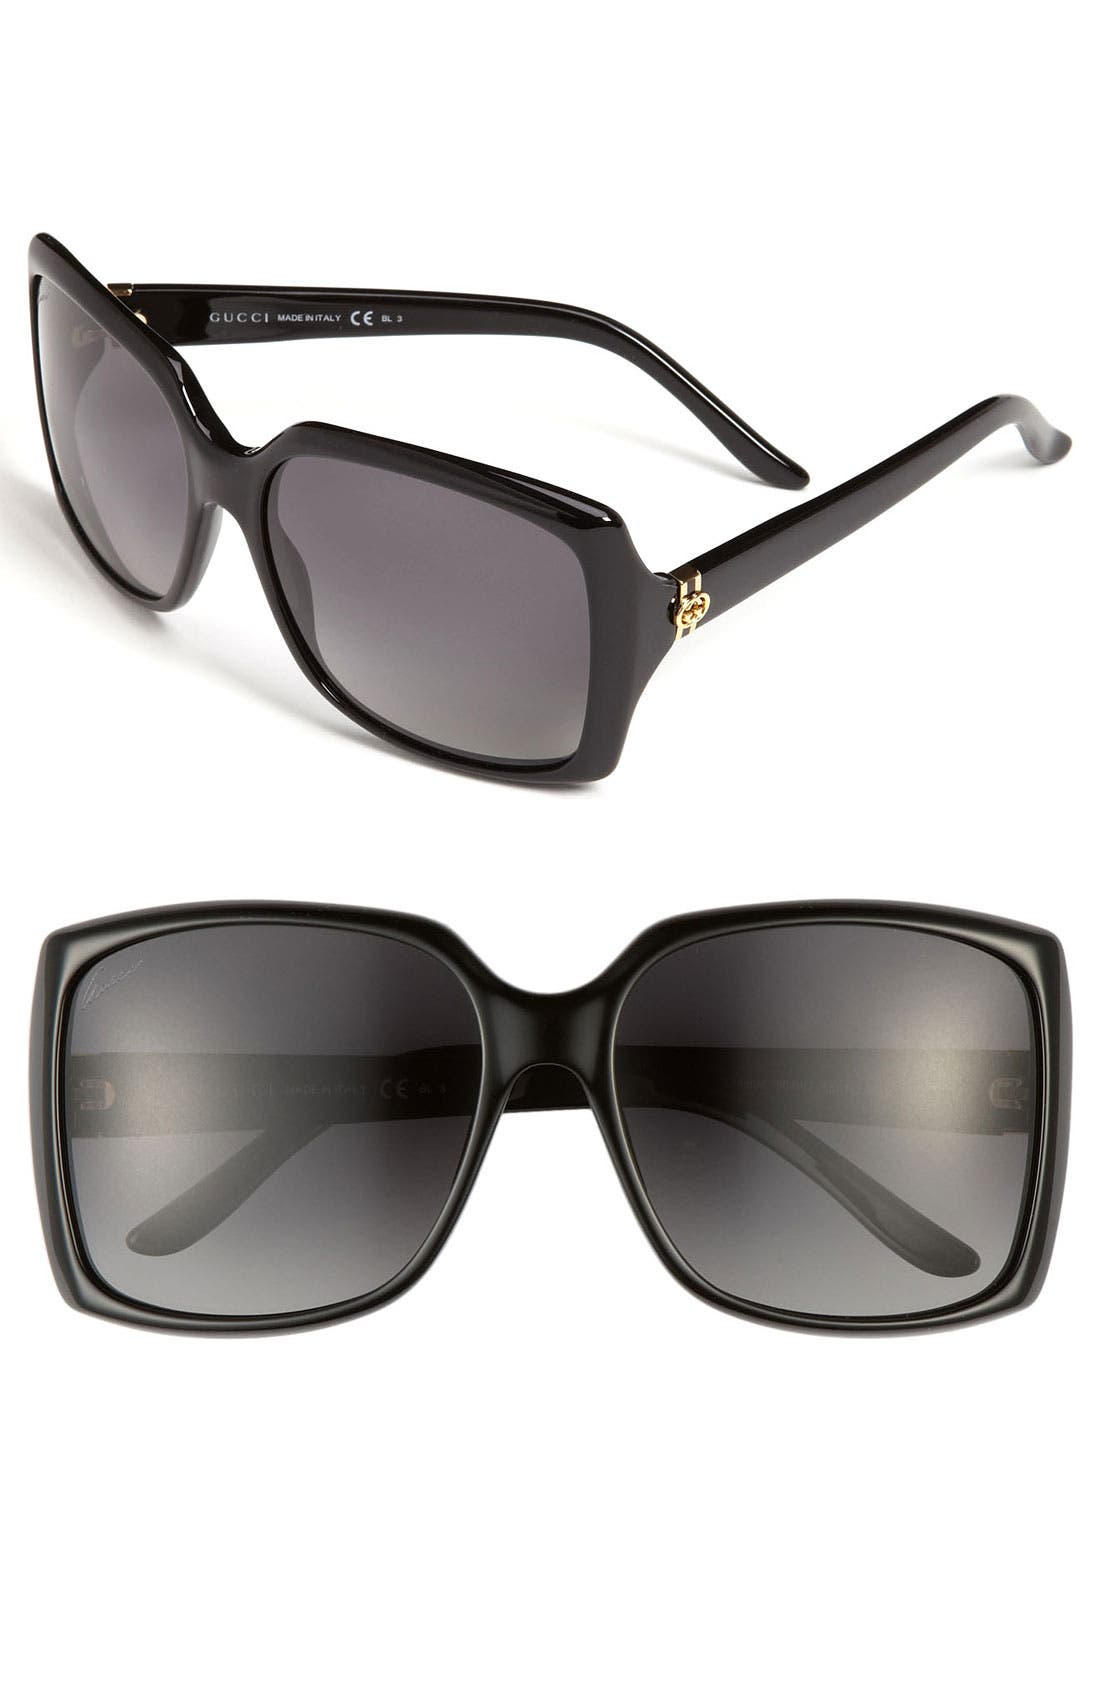 Main Image - Gucci 58mm Polarized Sunglasses